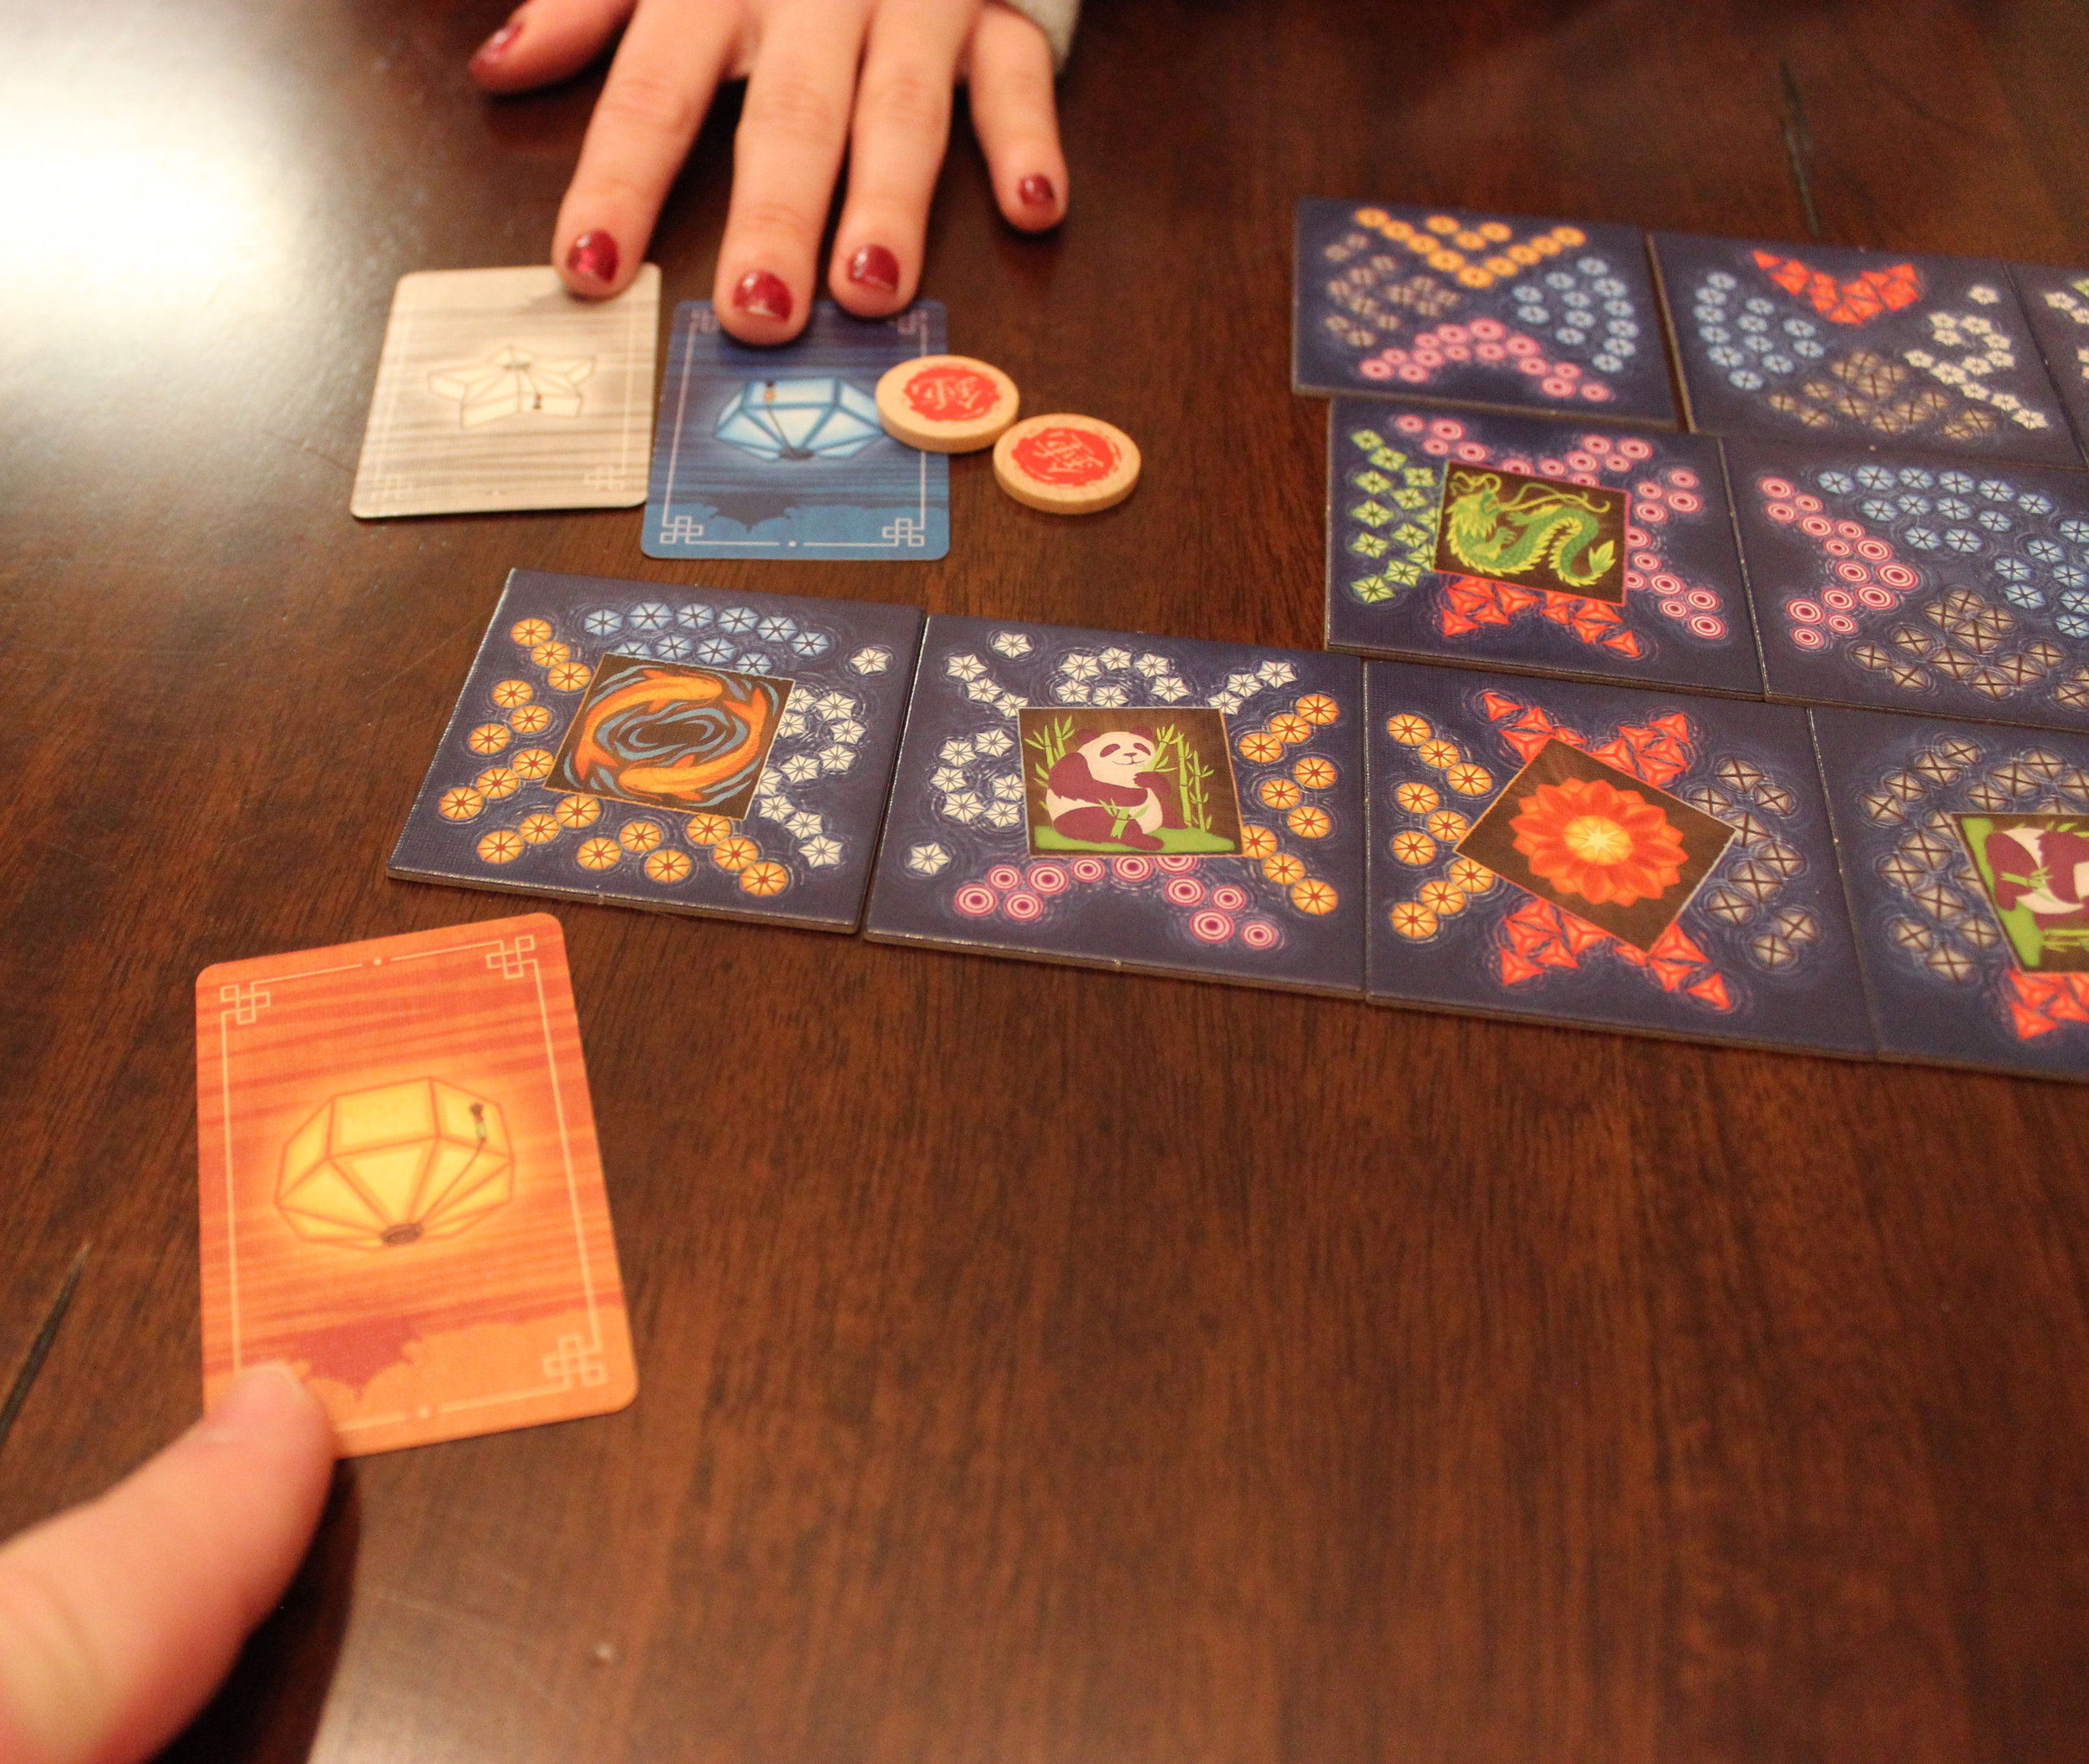 Here, the player across the table has placed a lake tile with the fish platform next to the tile with the panda platform. That player gets a blue card (because the blue faces her) and a white (because she matched a white side with a white side). She also gets two favor tokens for matching two platforms. Meanwhile, the second player across the table gets an orange card (because the orange faces him).